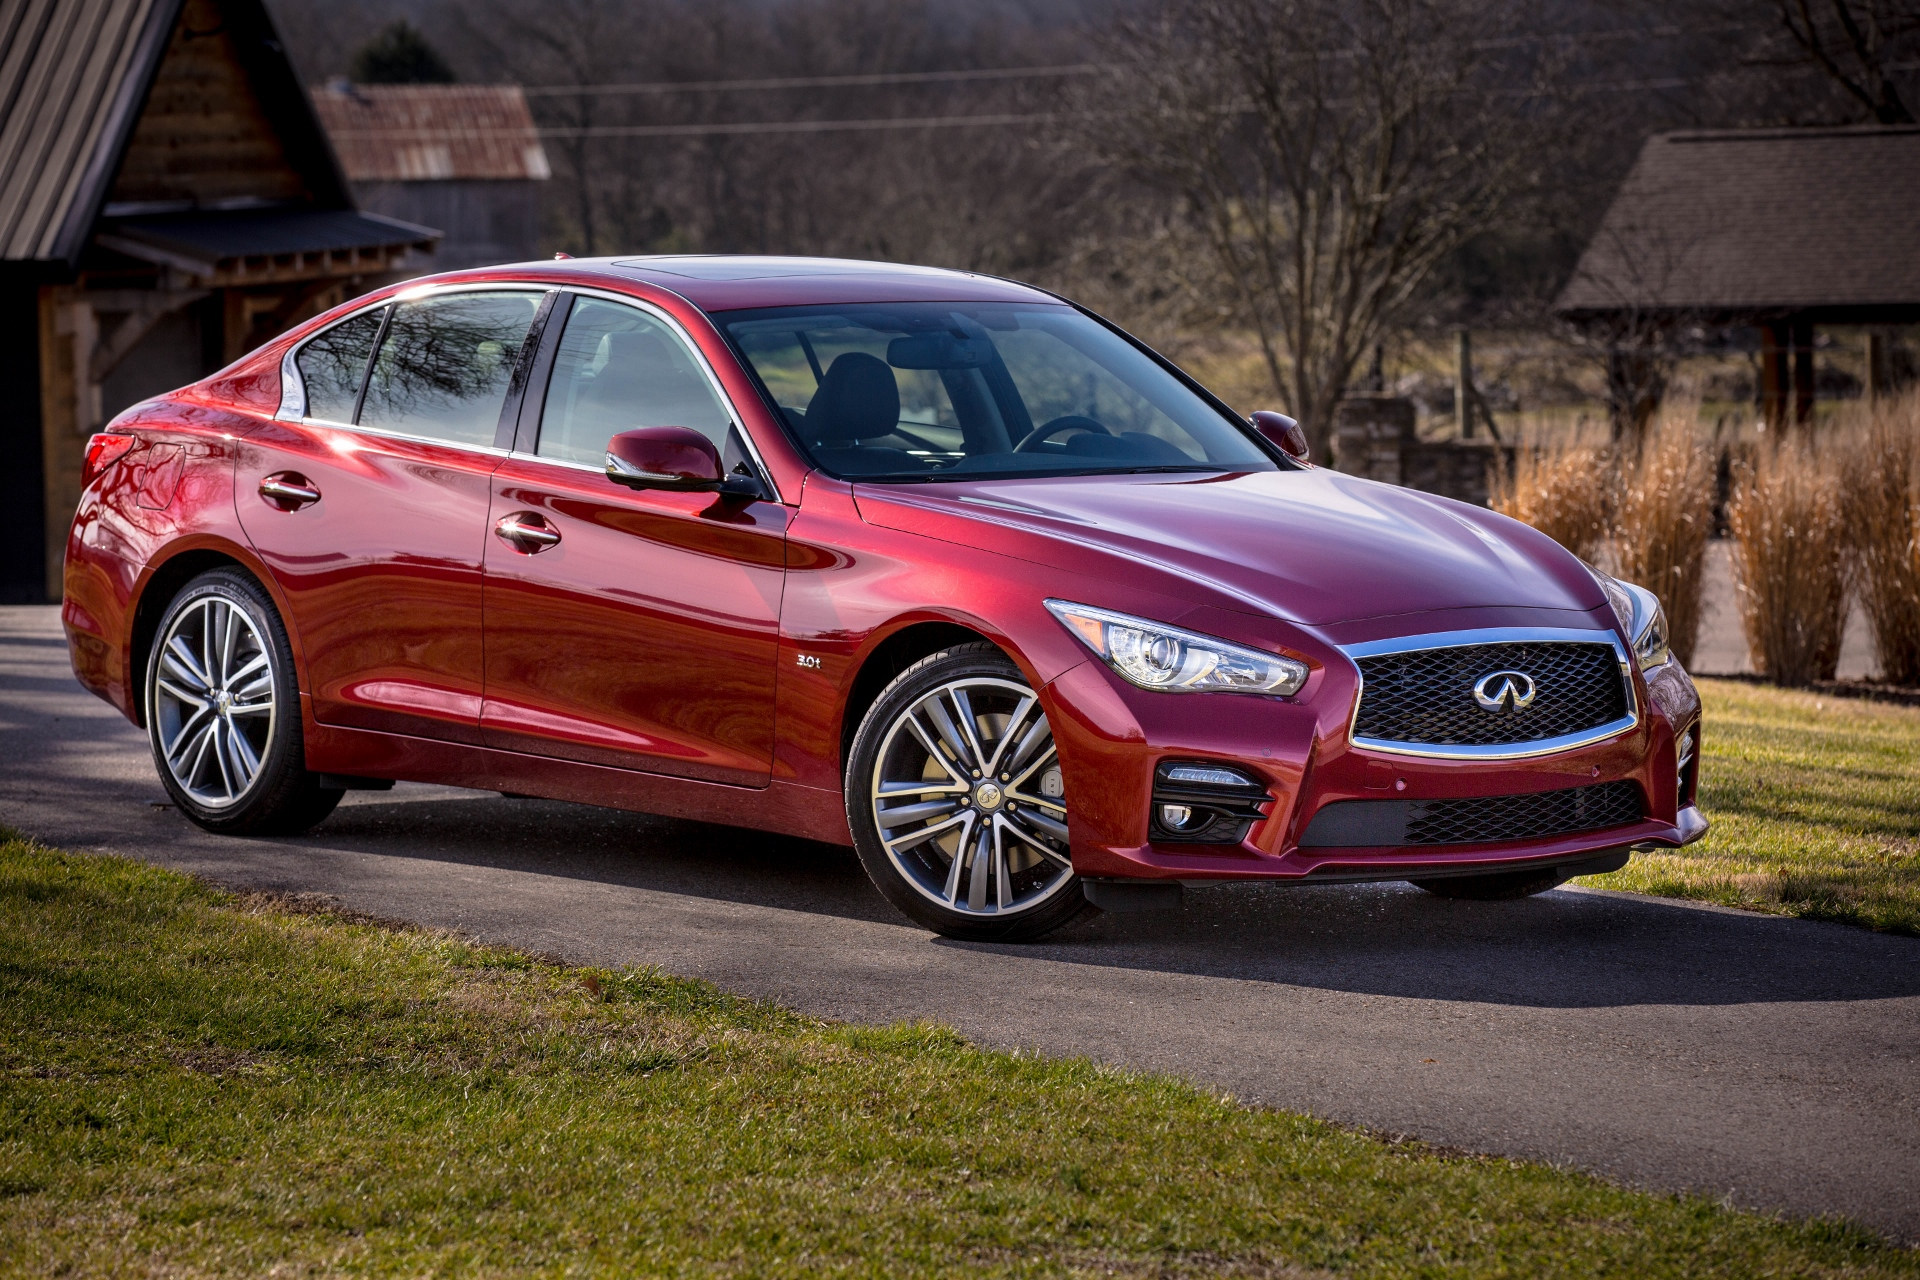 2016 infiniti q50 red sport 400 first drive review. Black Bedroom Furniture Sets. Home Design Ideas